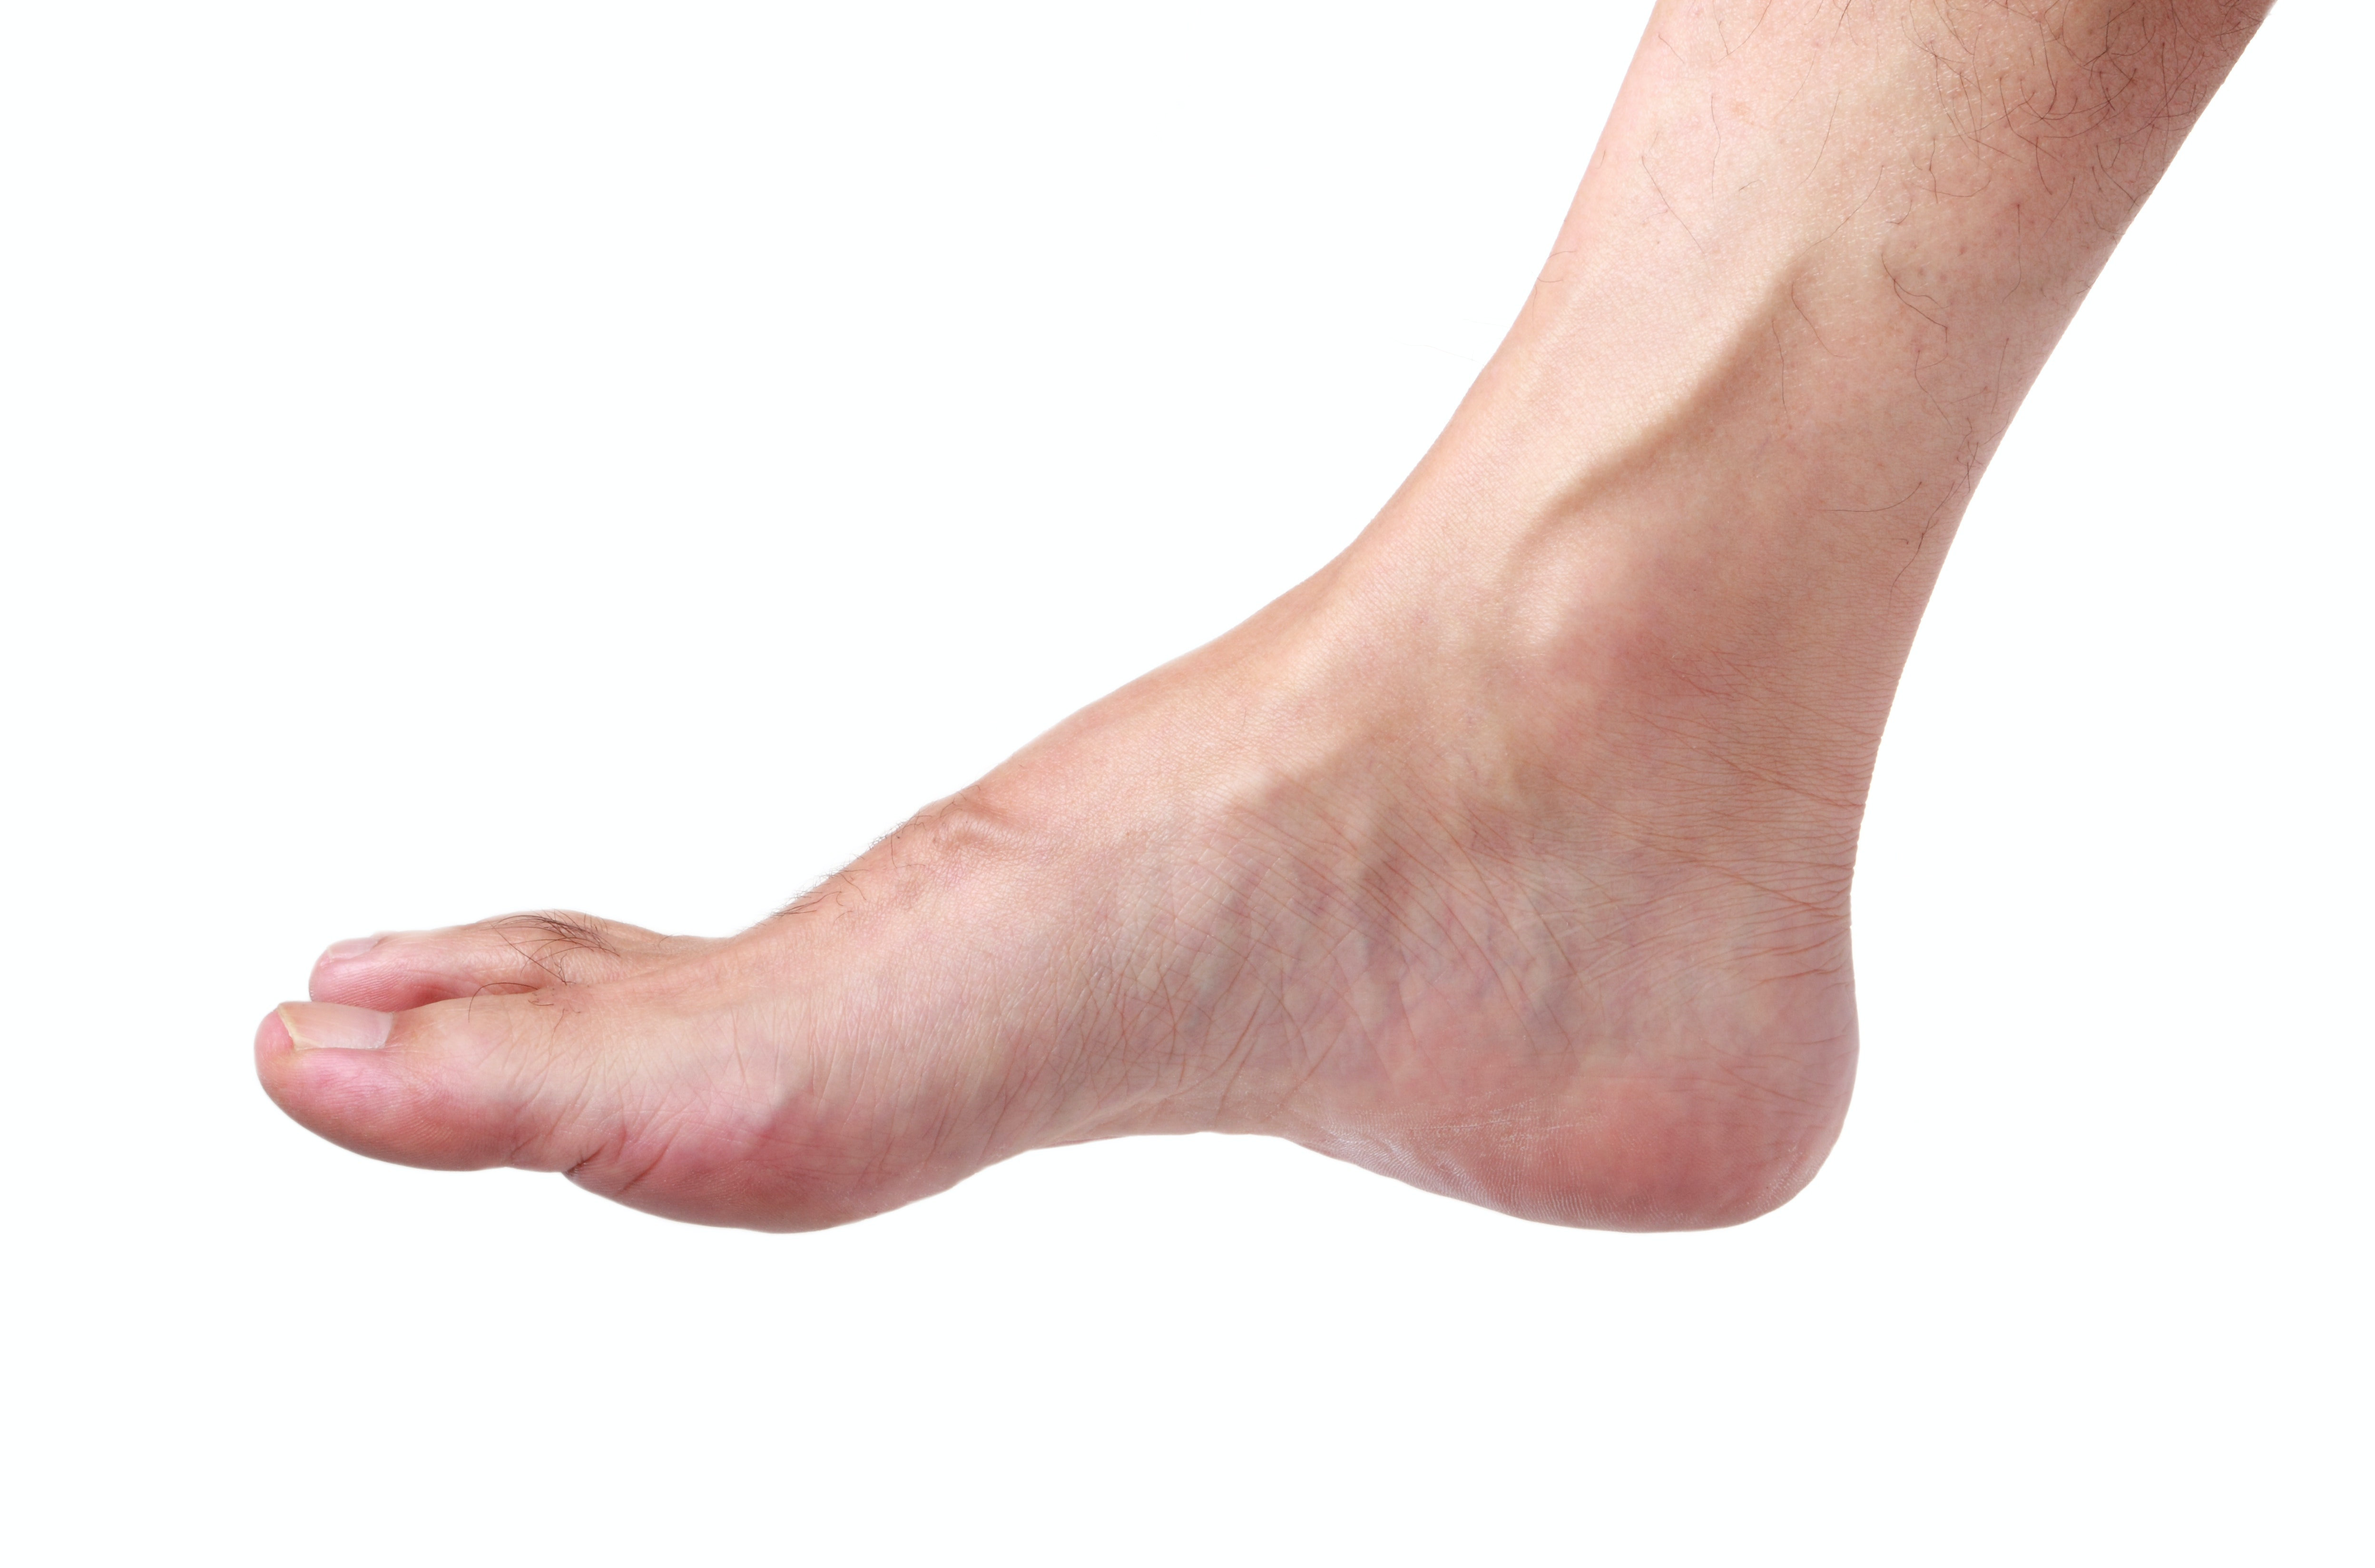 An image depicting a person suffering from pale feet symptoms